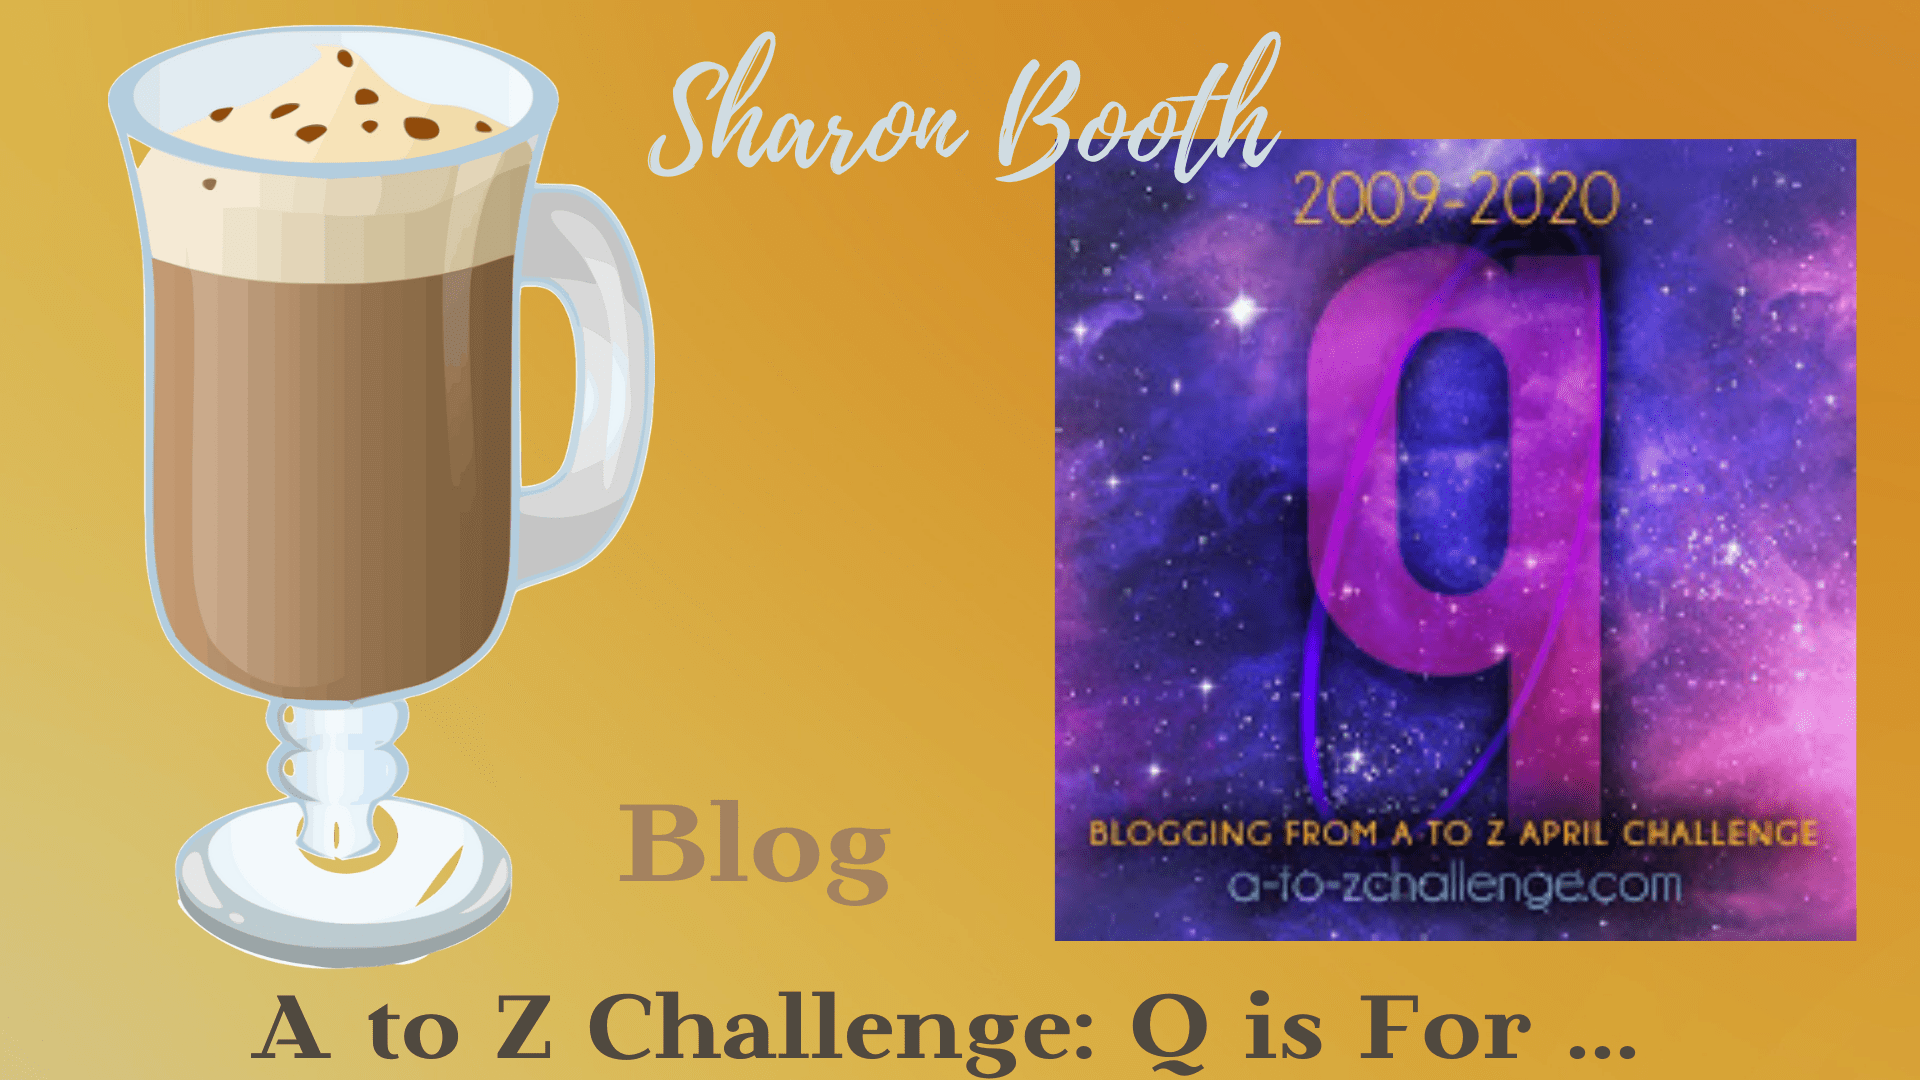 #AtoZChallenge Q is For …